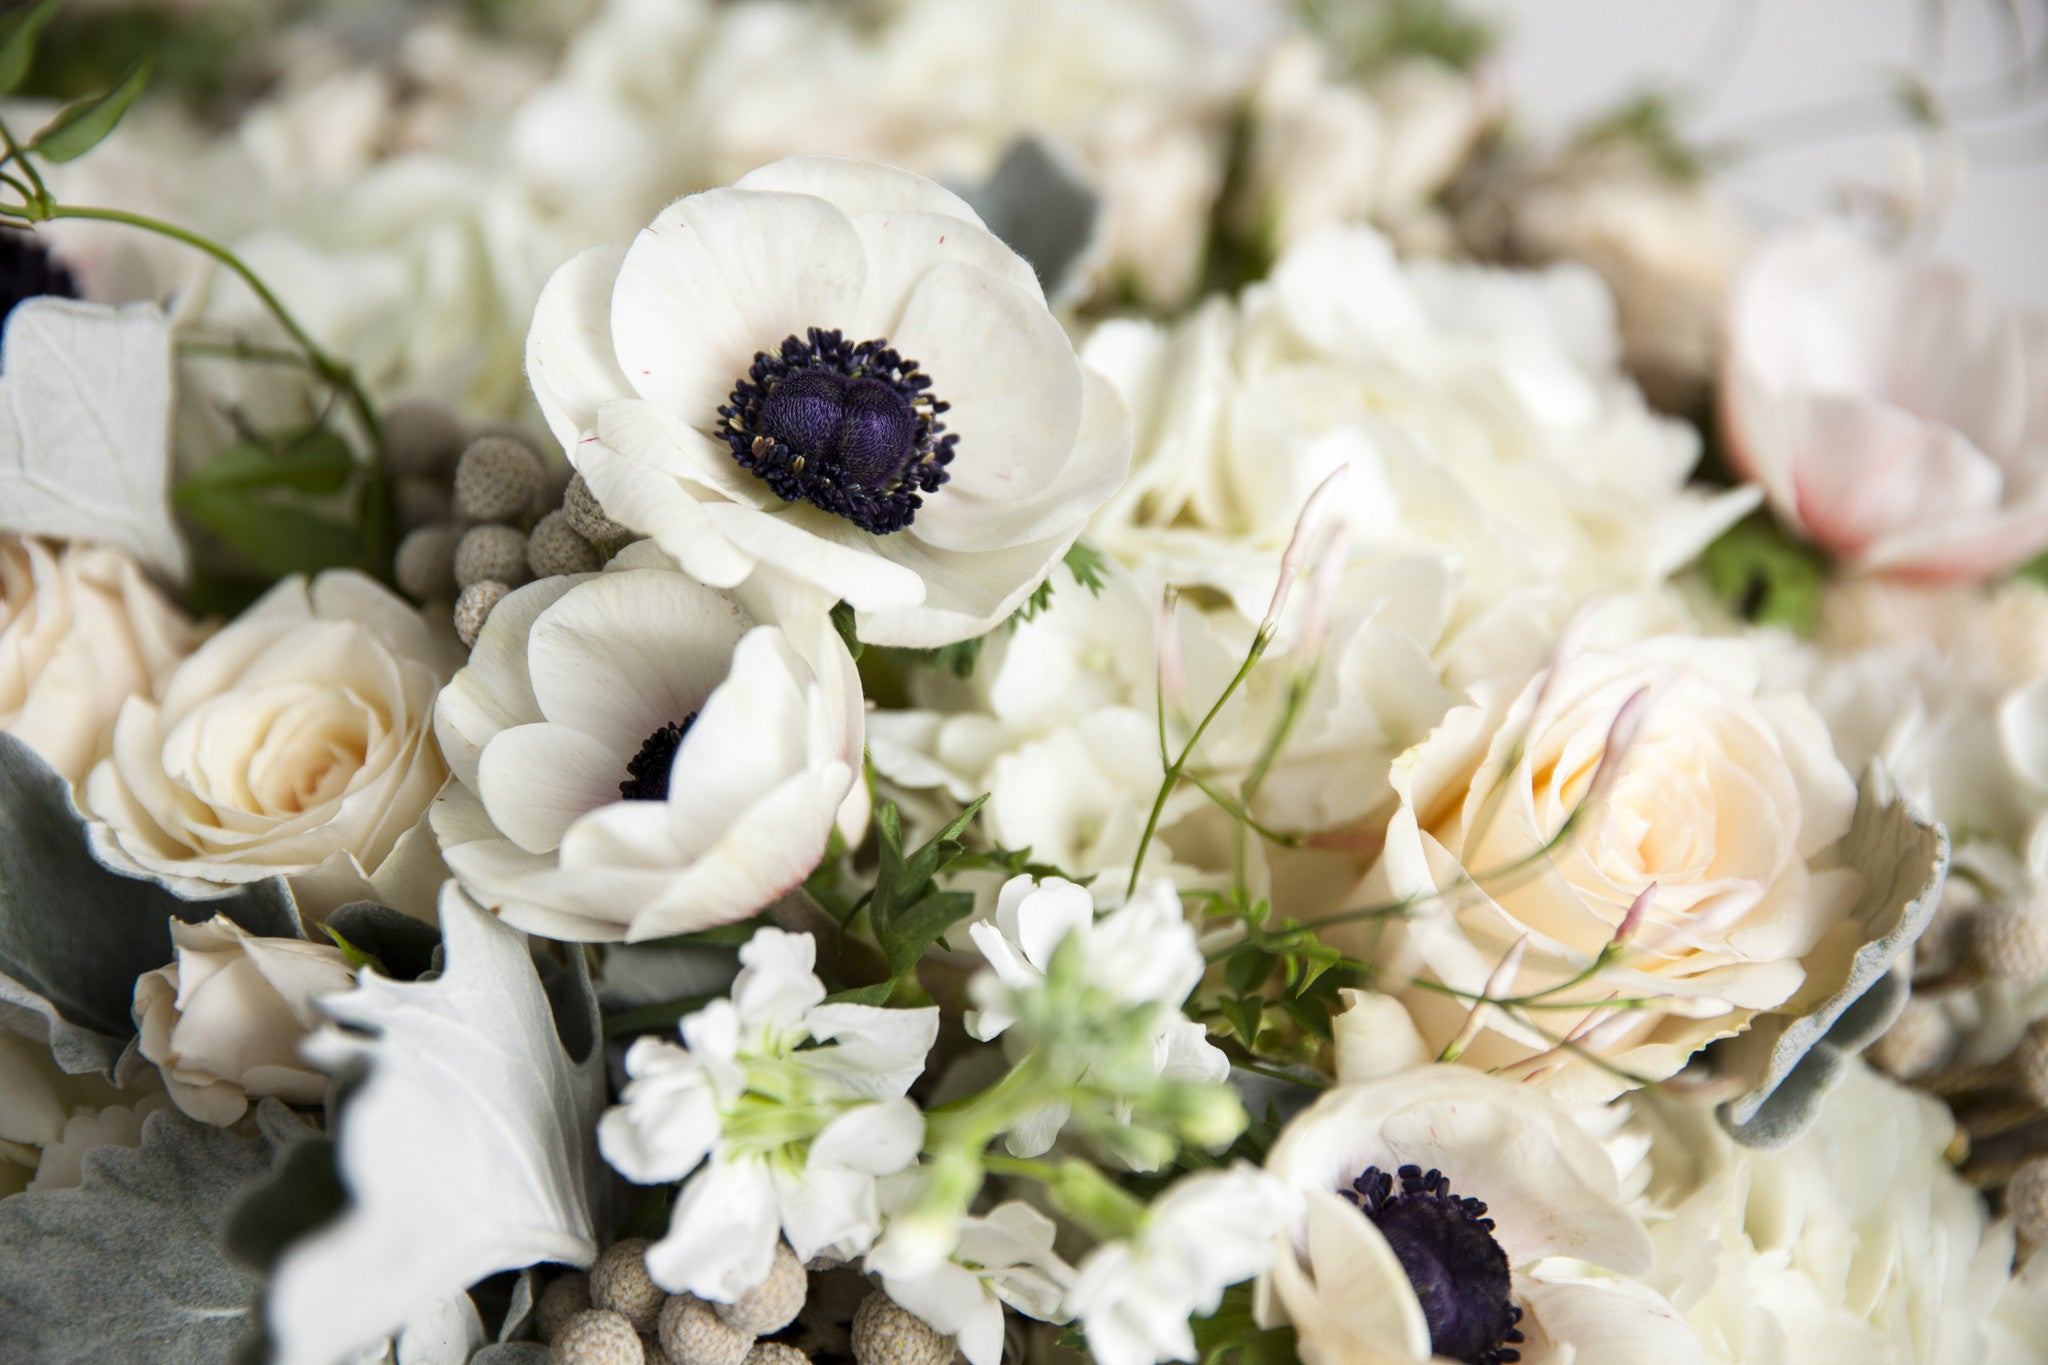 Dusty Whites - Élan Flowers roses anenome